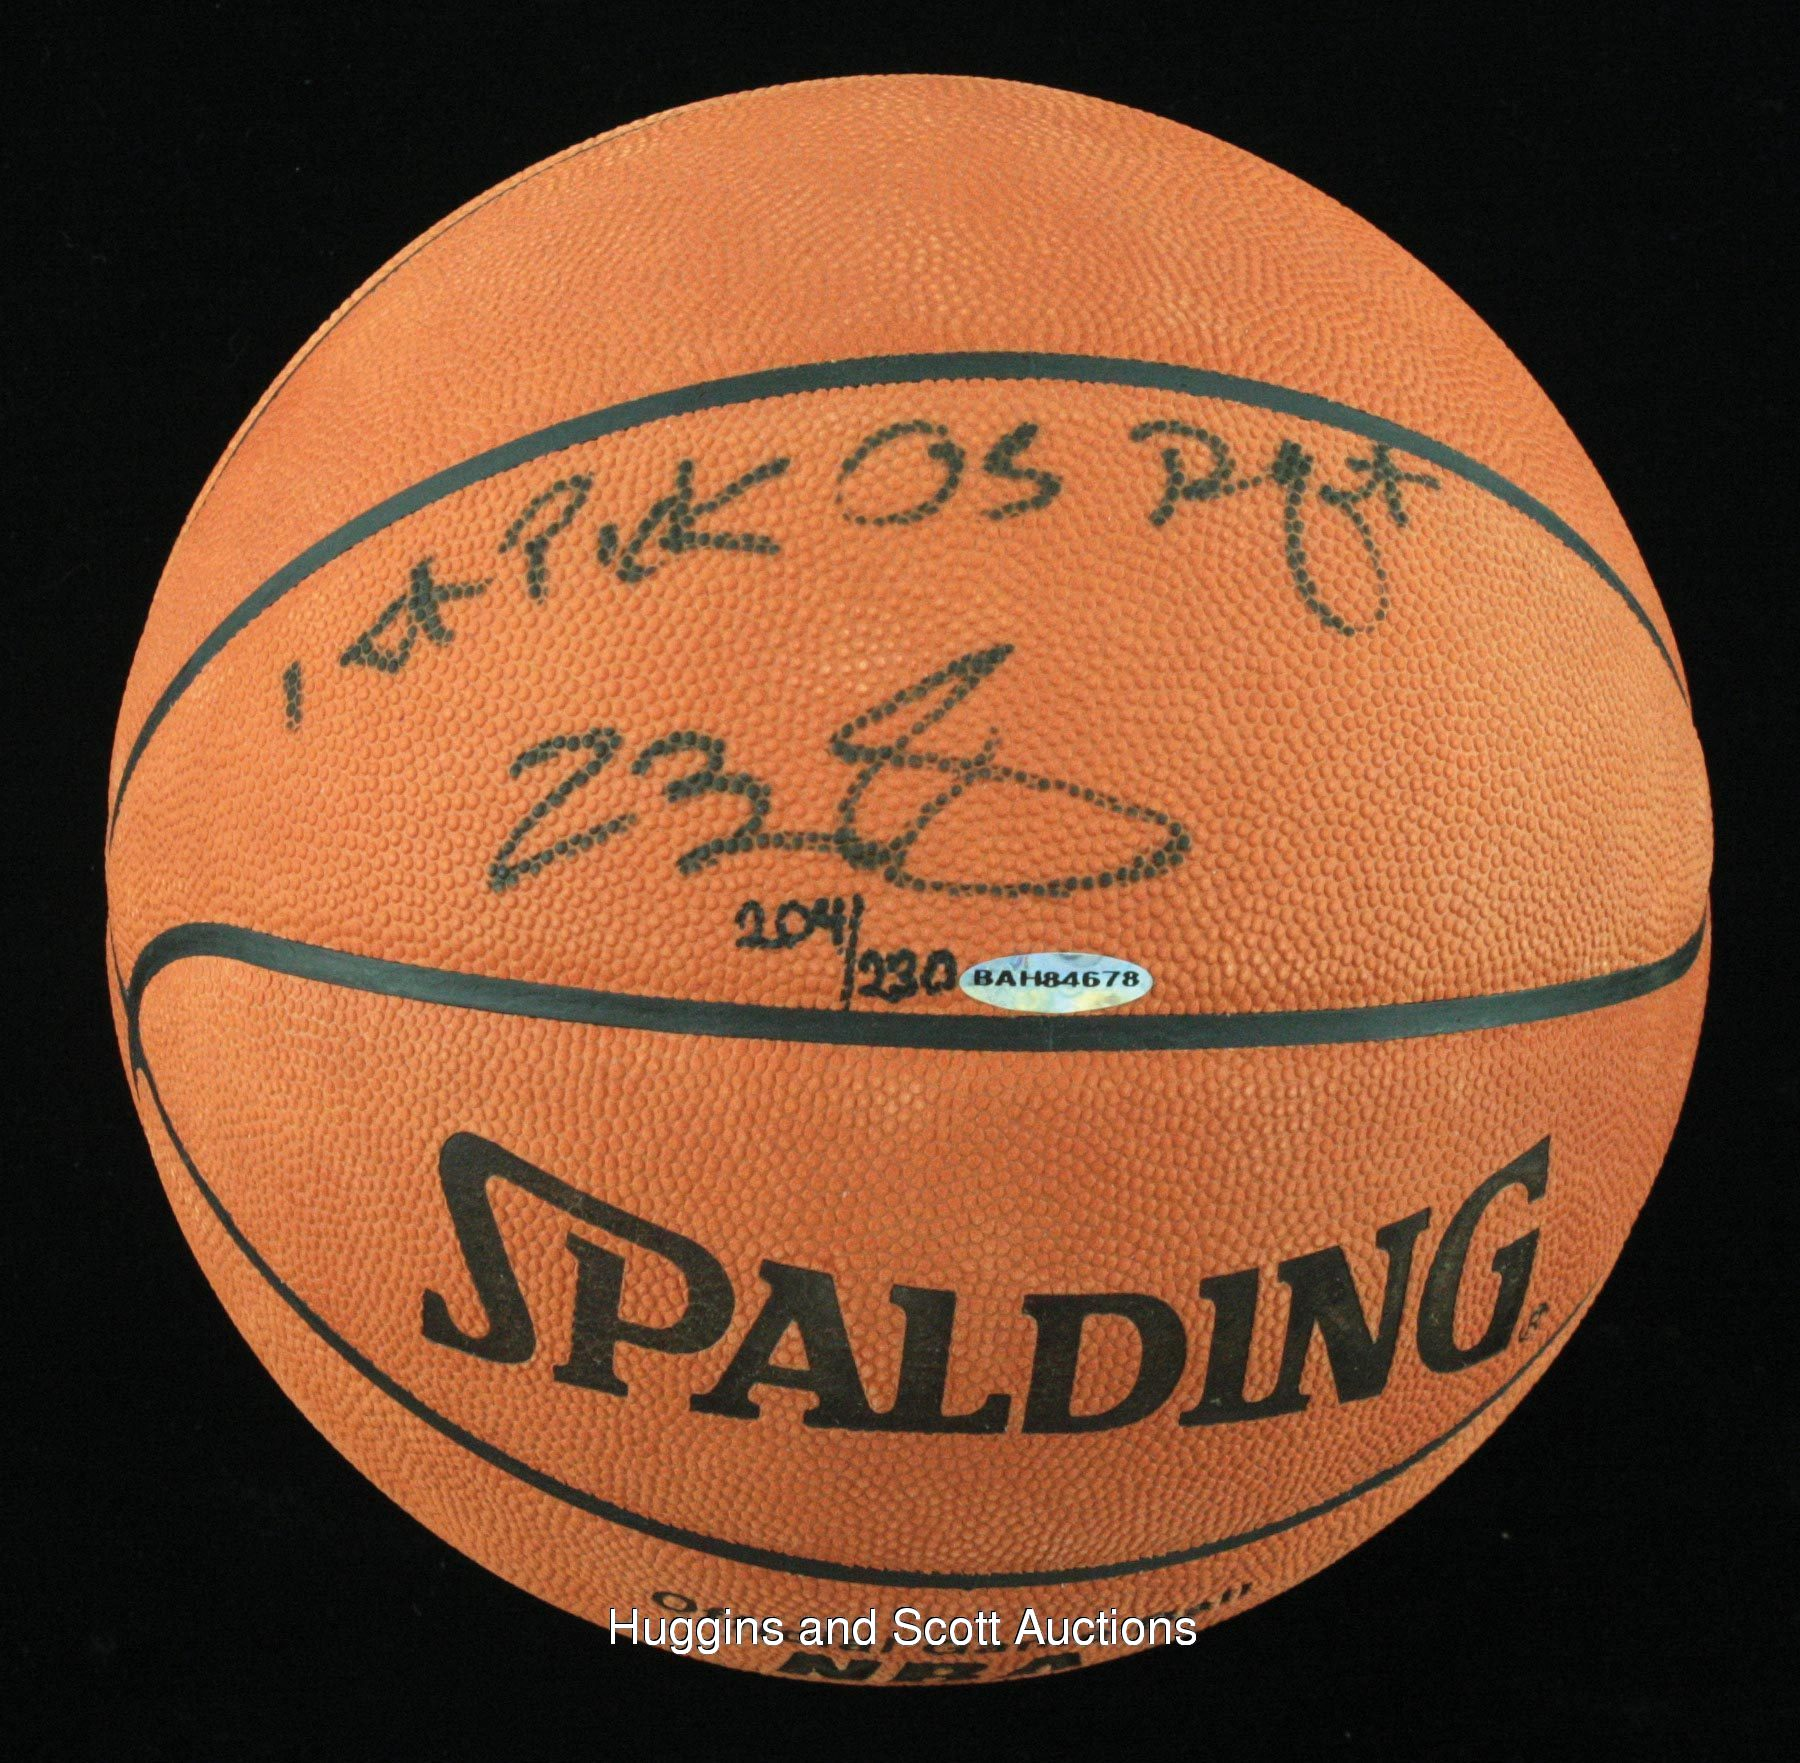 lebron james autograph - photo #29